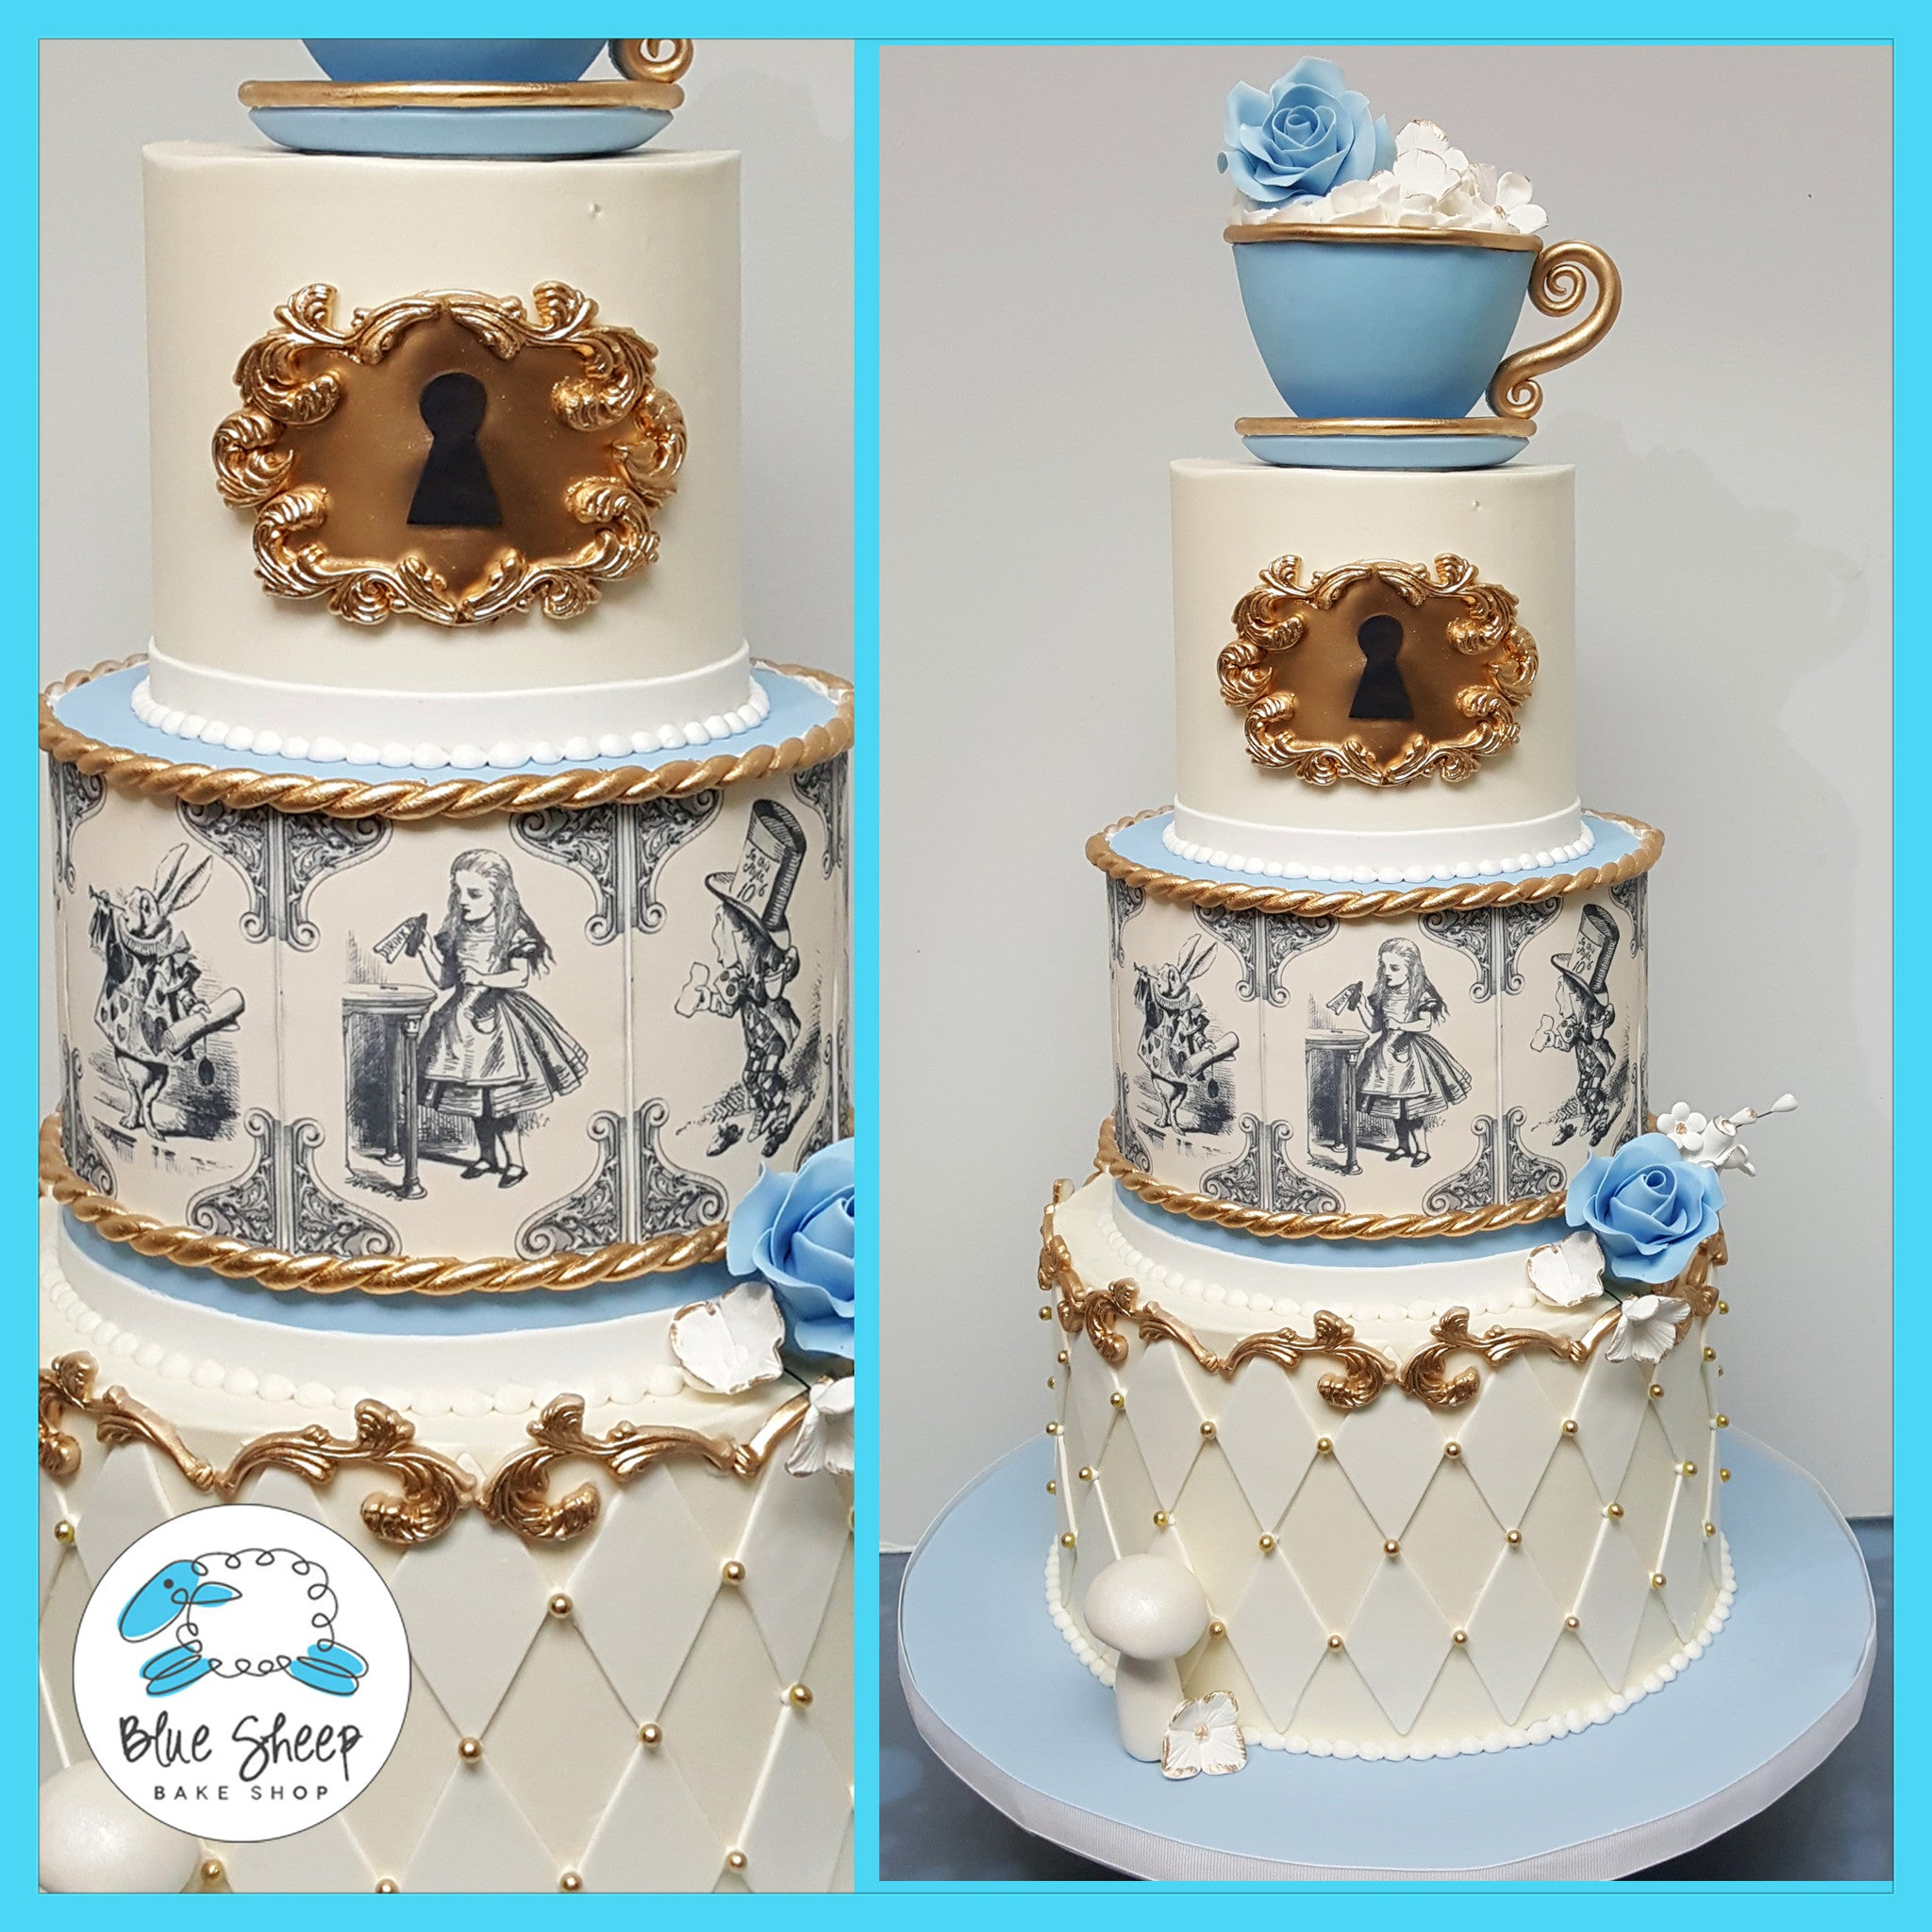 Alice In Wonderland Birthday Cake Nj Blue Sheep Bake Shop